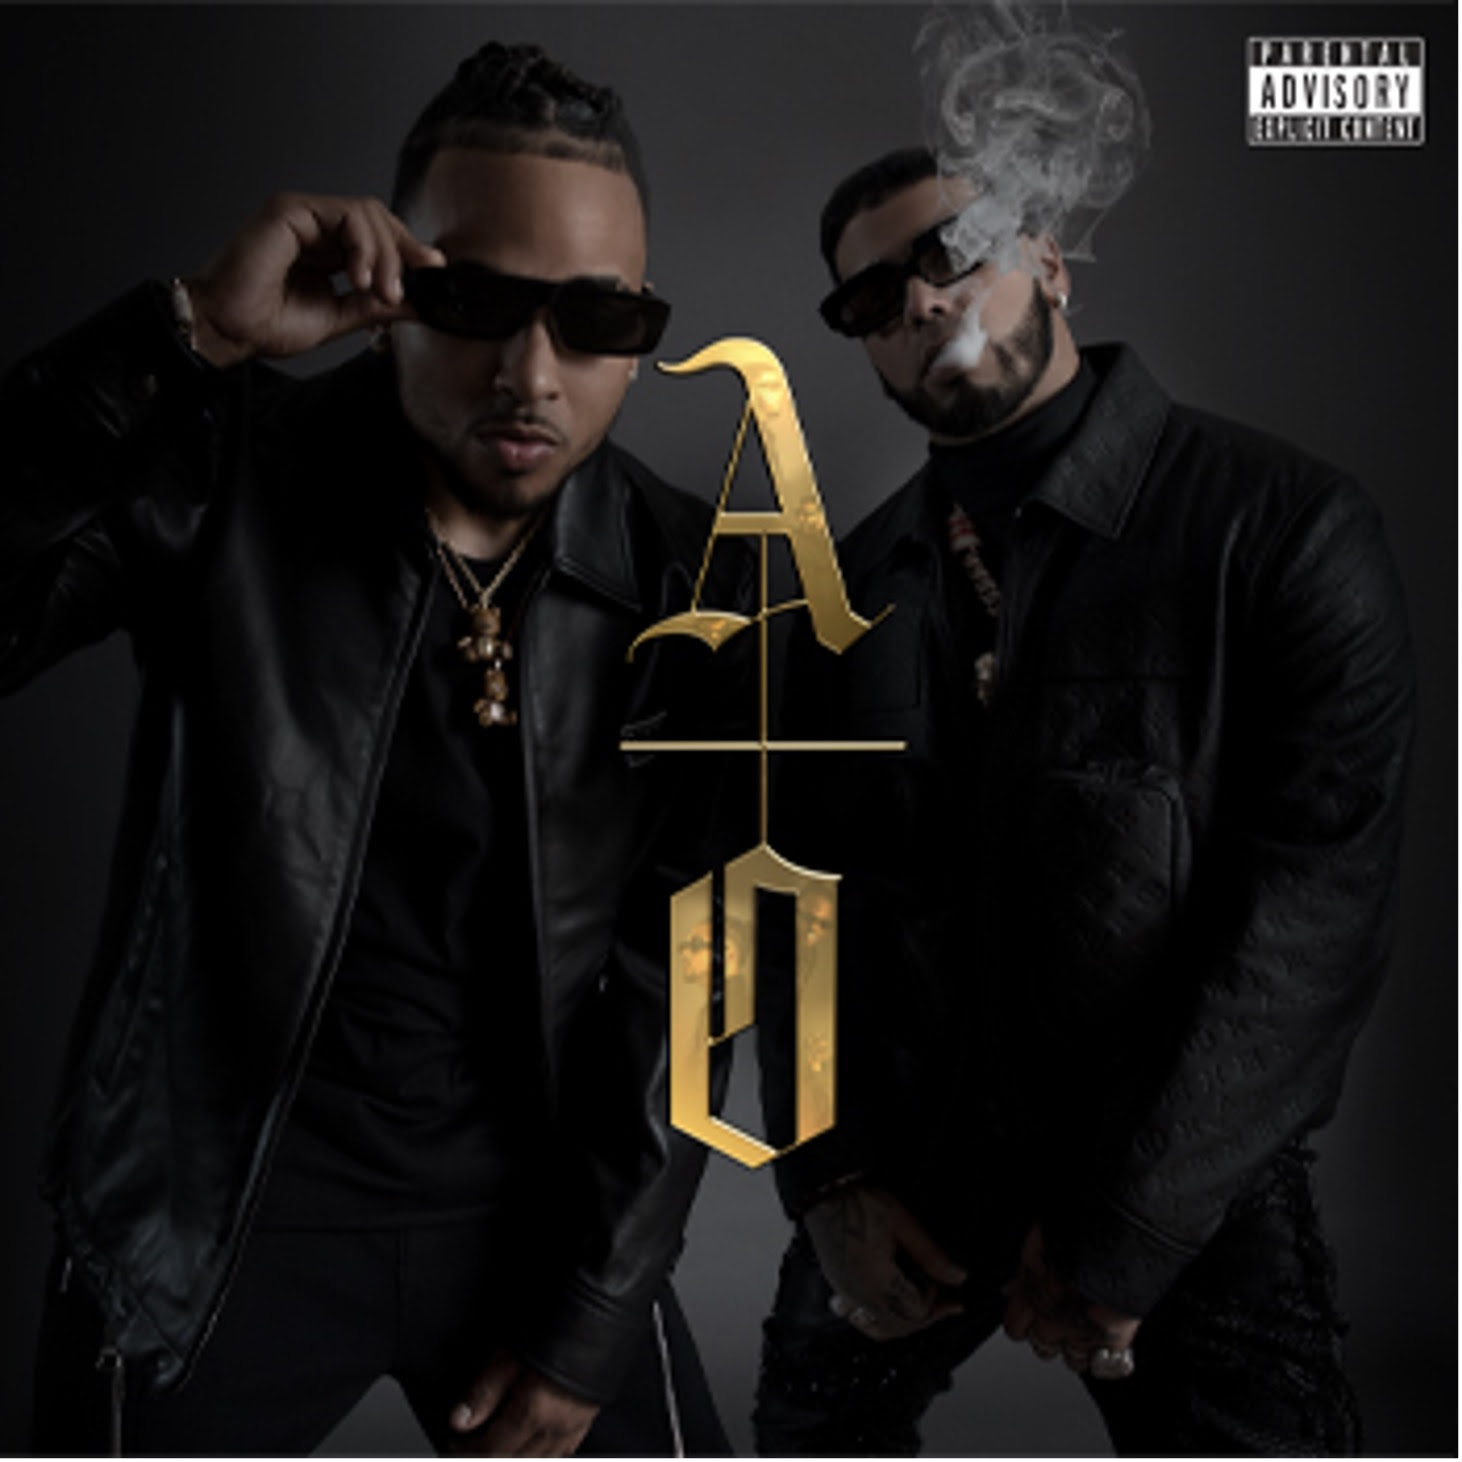 SOURCE LATINO: Anuel AA and Ozuna's 'LOS DIOSES' Is Top Latin Album in The U.S.